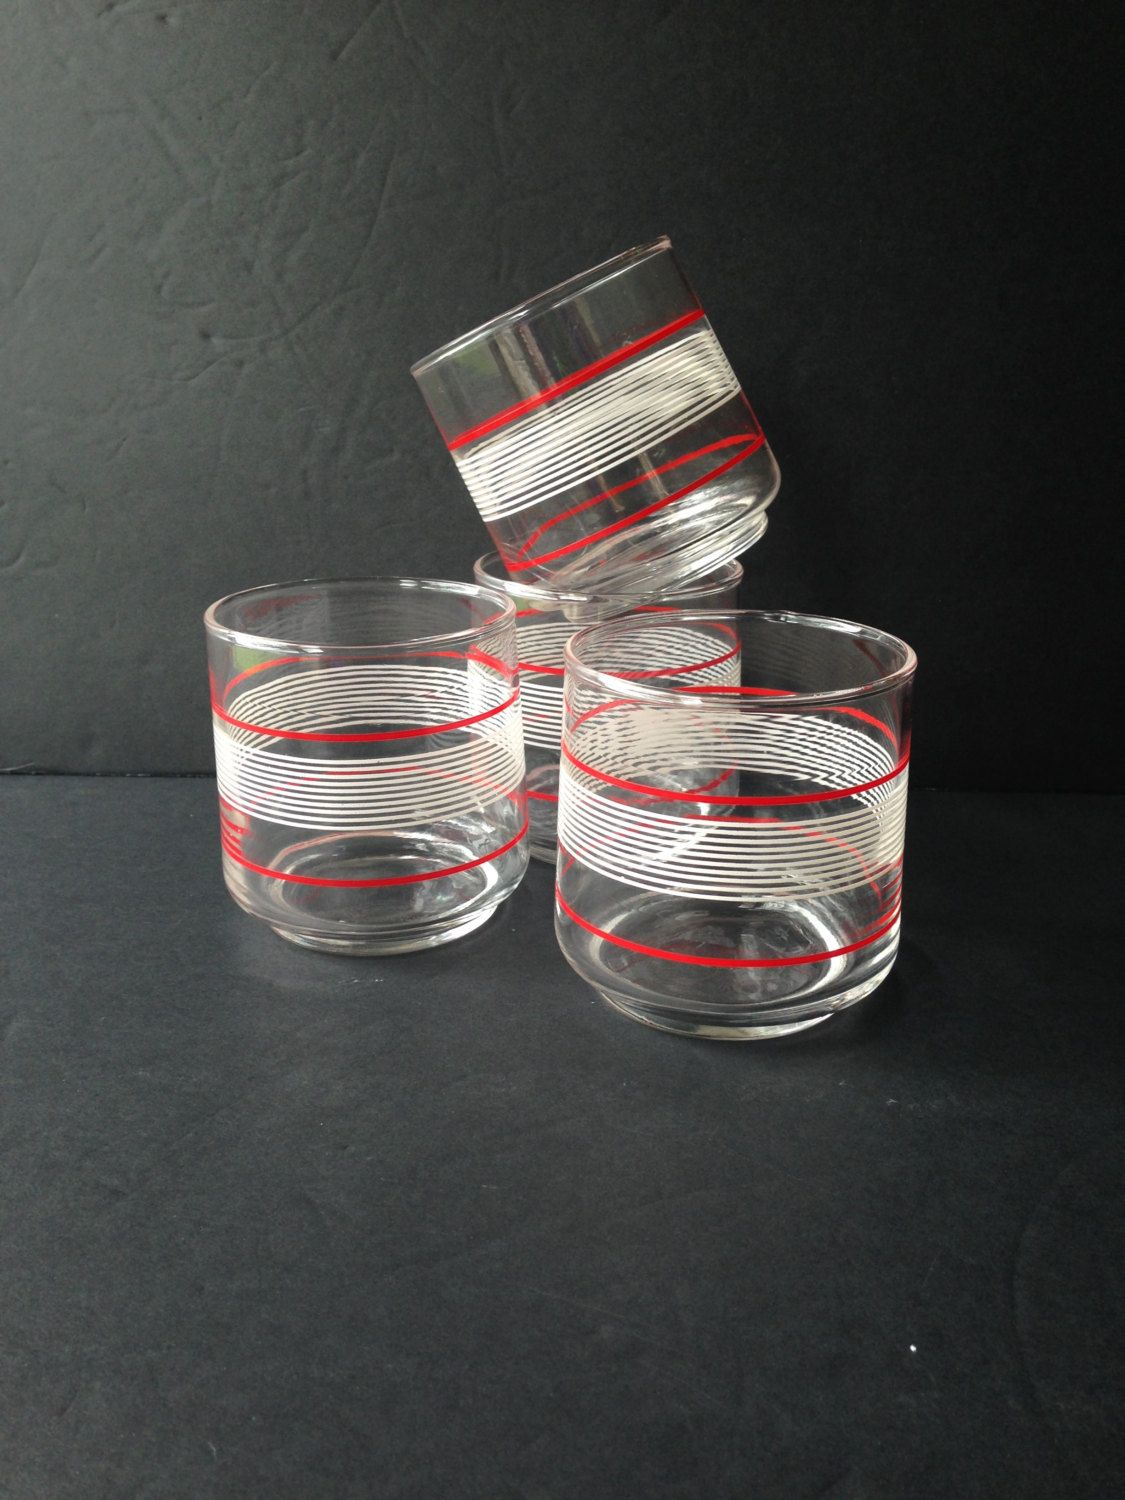 red white striped drinking glasses, set of 4 rocks glasses, vintage double old fashioned glasses, vintage red white housewares barware - pinned by pin4etsy.com